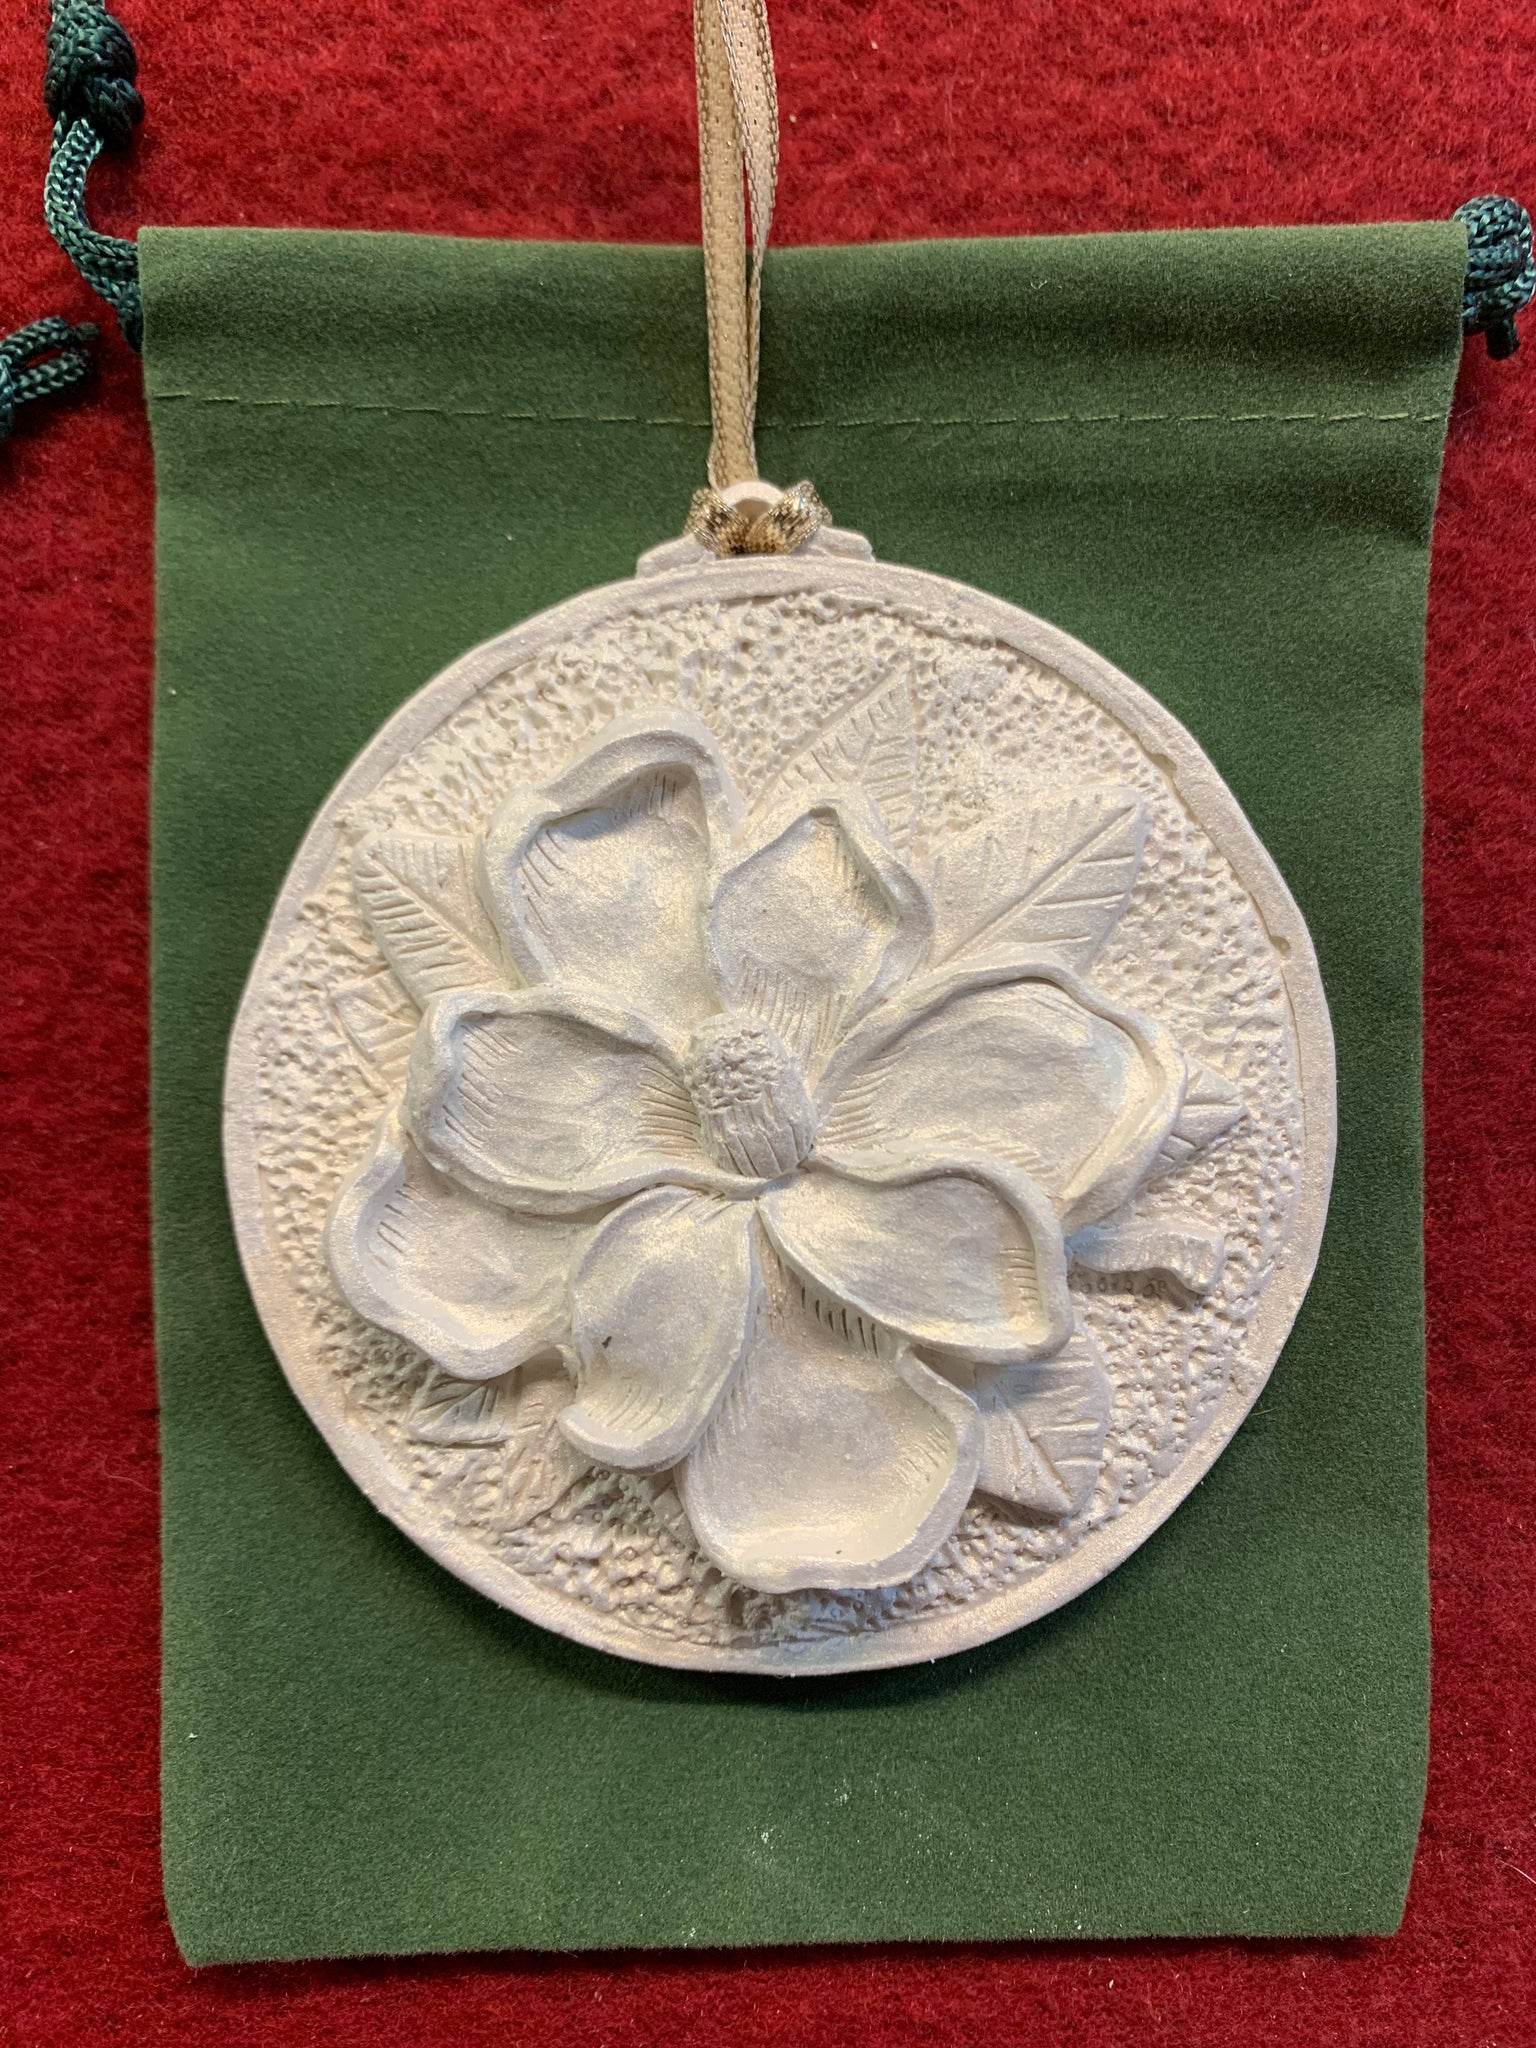 *NEW* 2019 Iridescent Magnolia Ornament